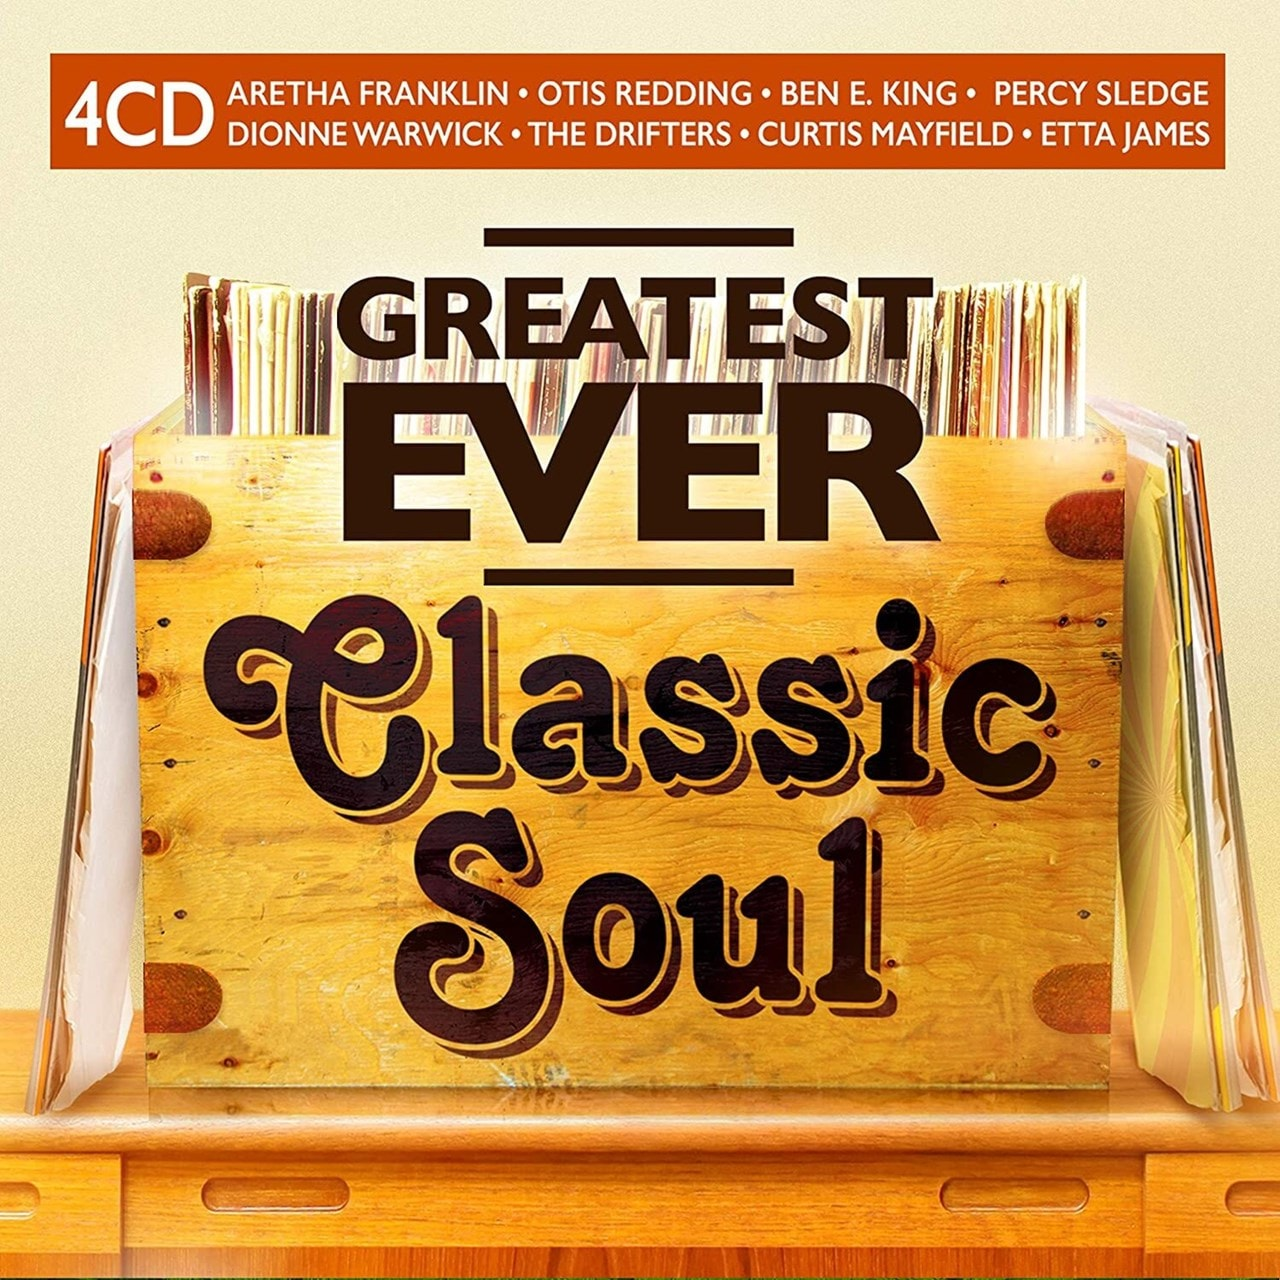 Greatest Ever Classic Soul - 1